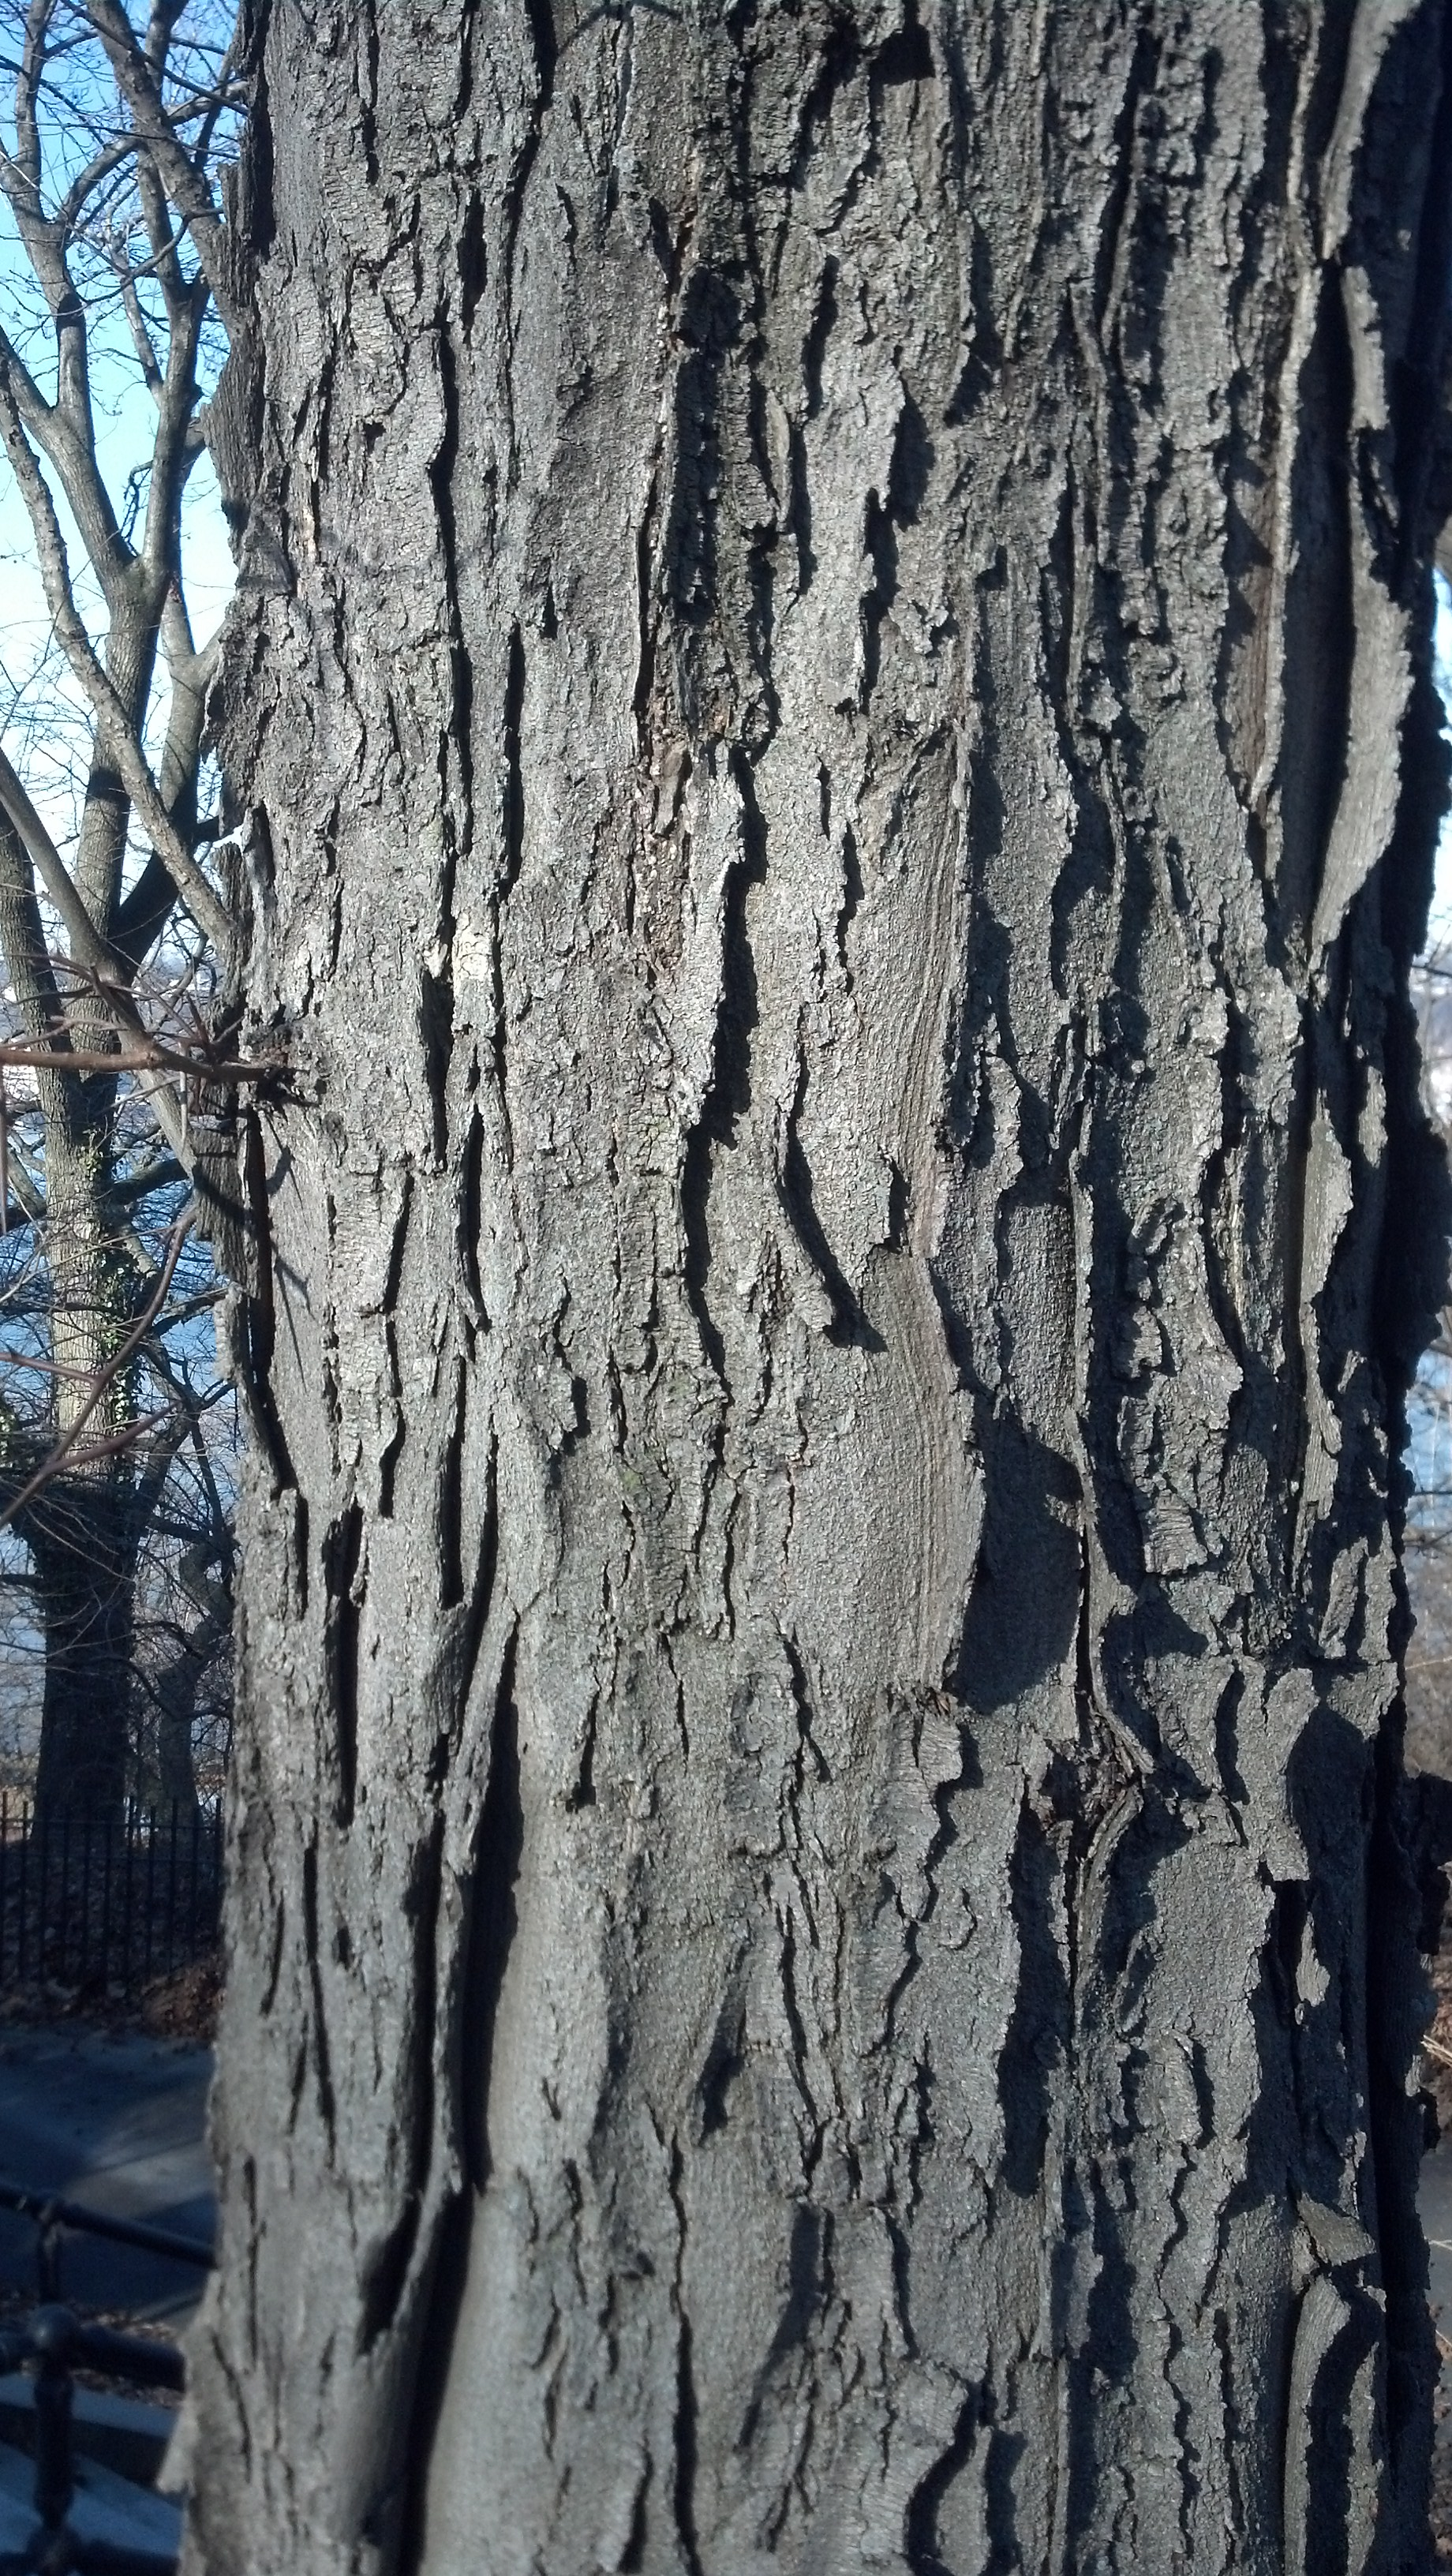 Honey locust bark